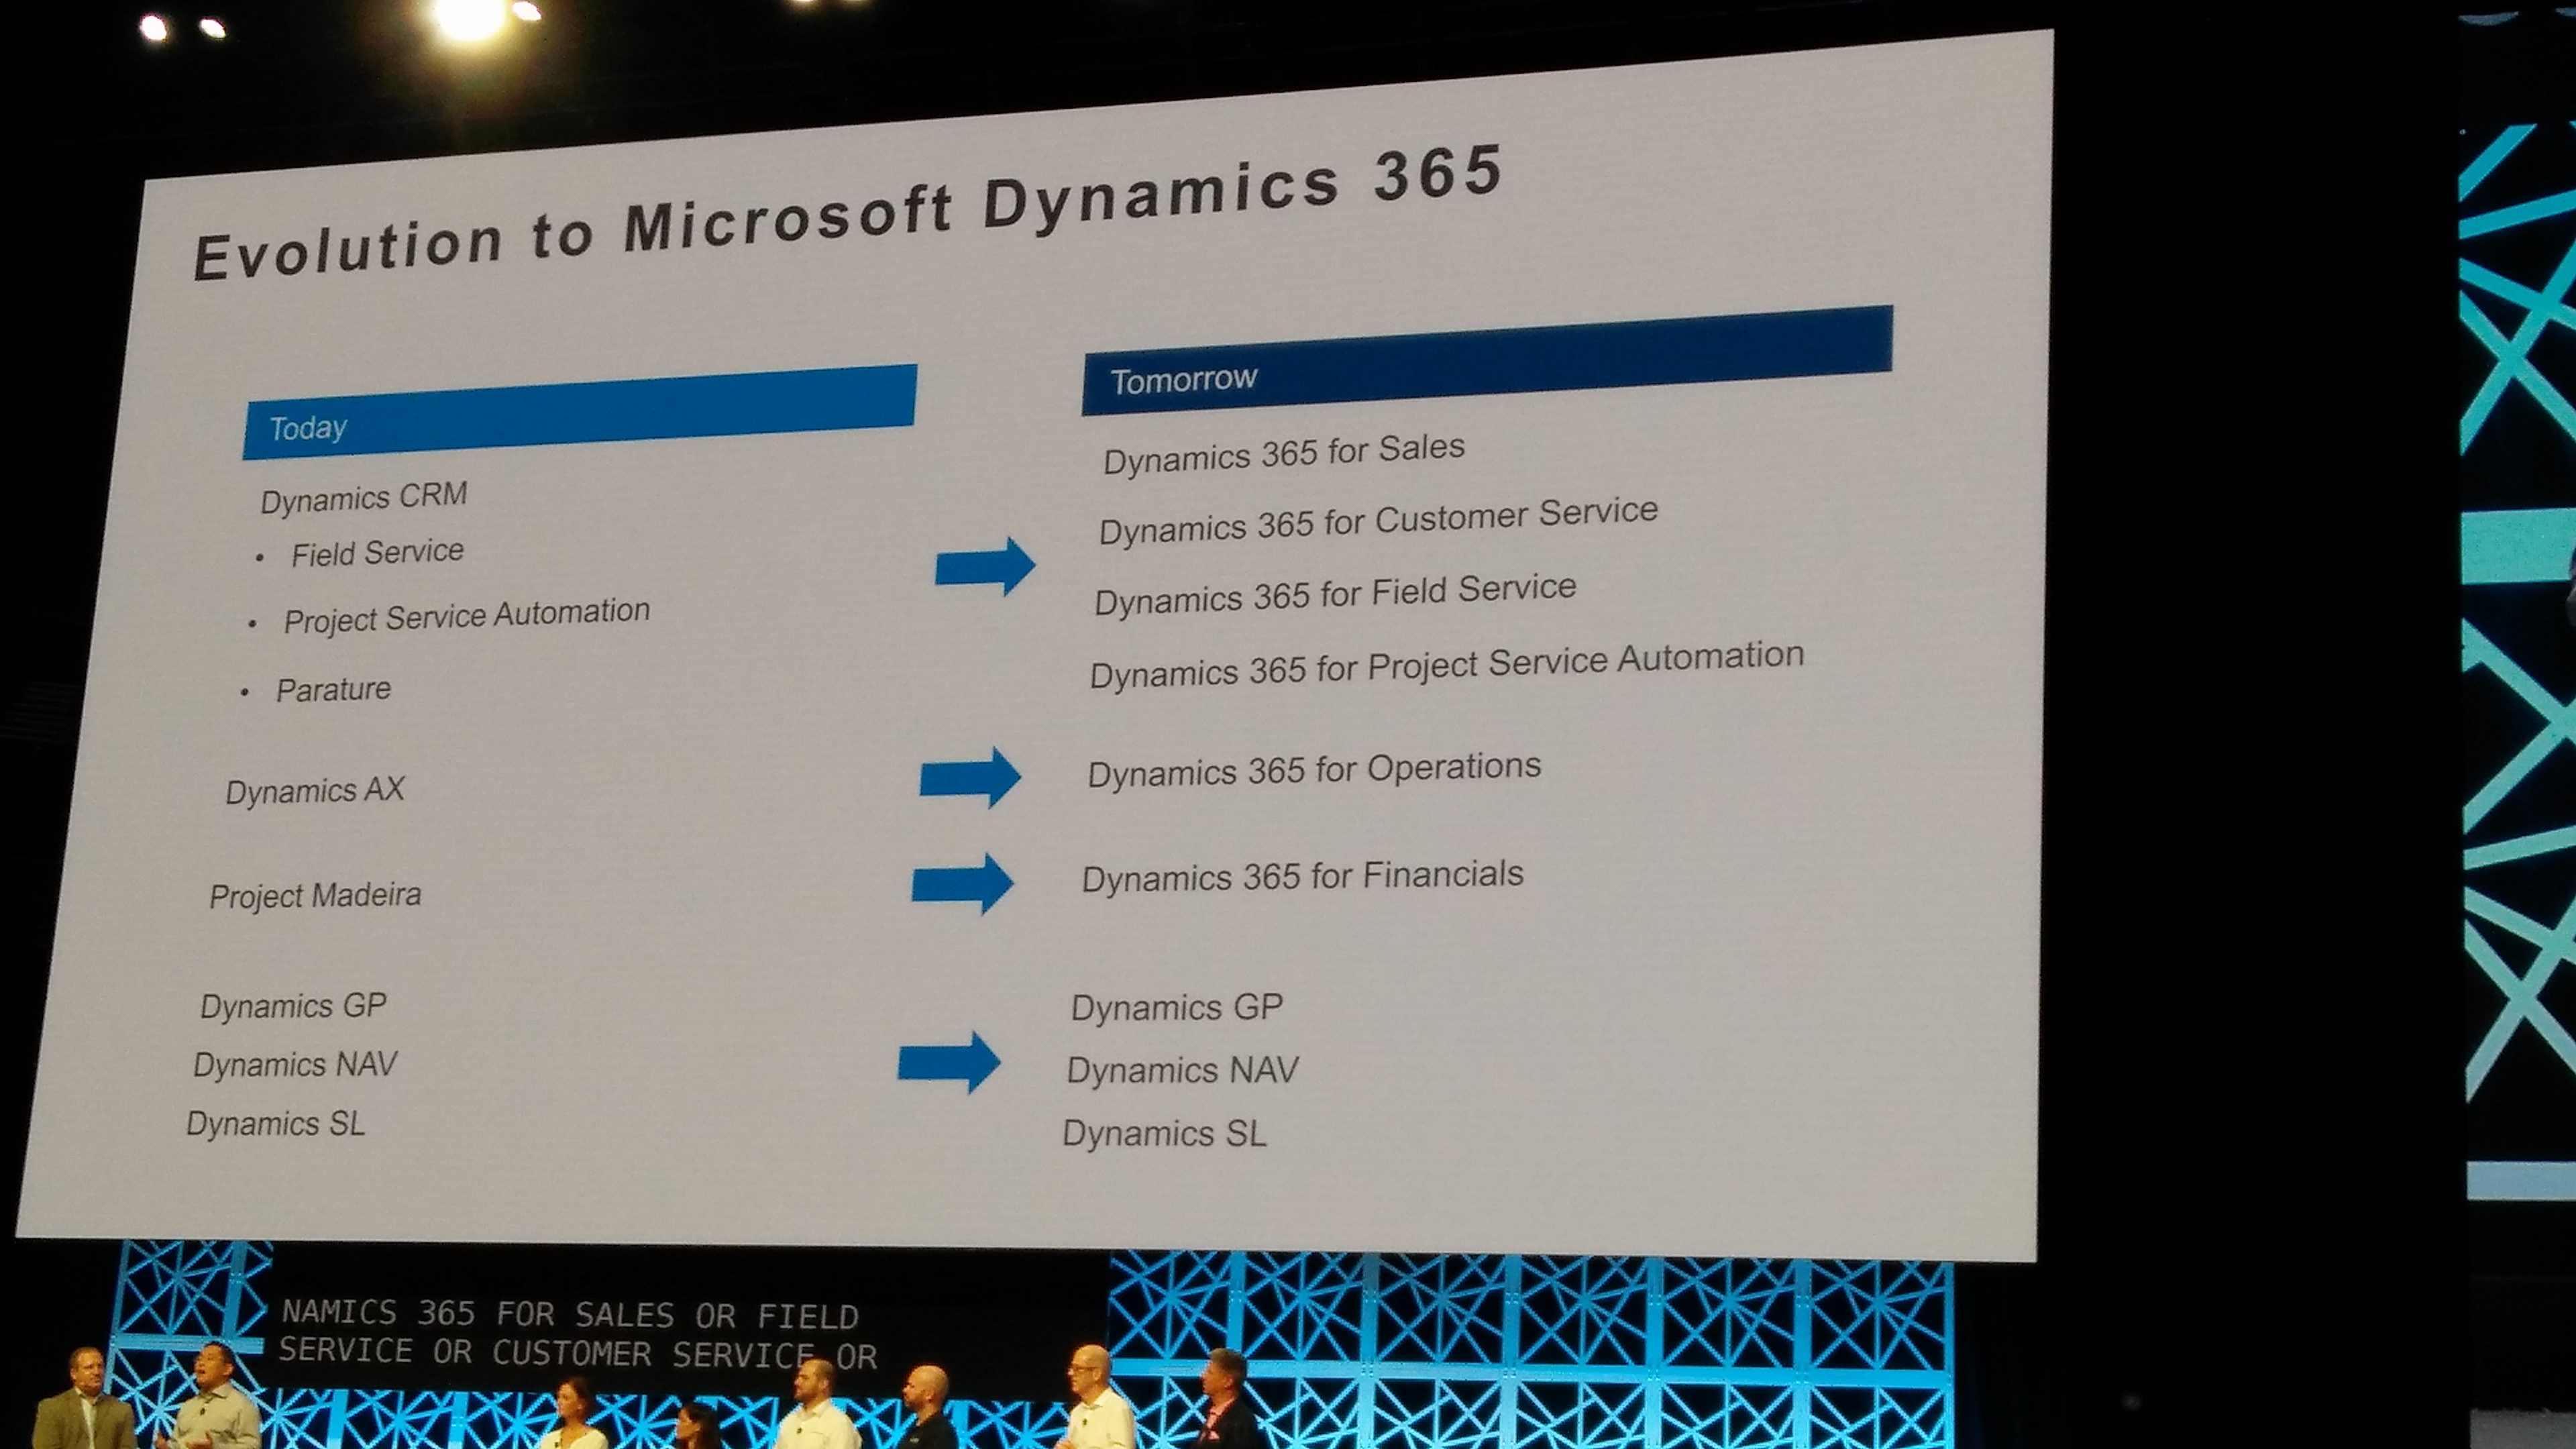 Dynamics 365 names in the future